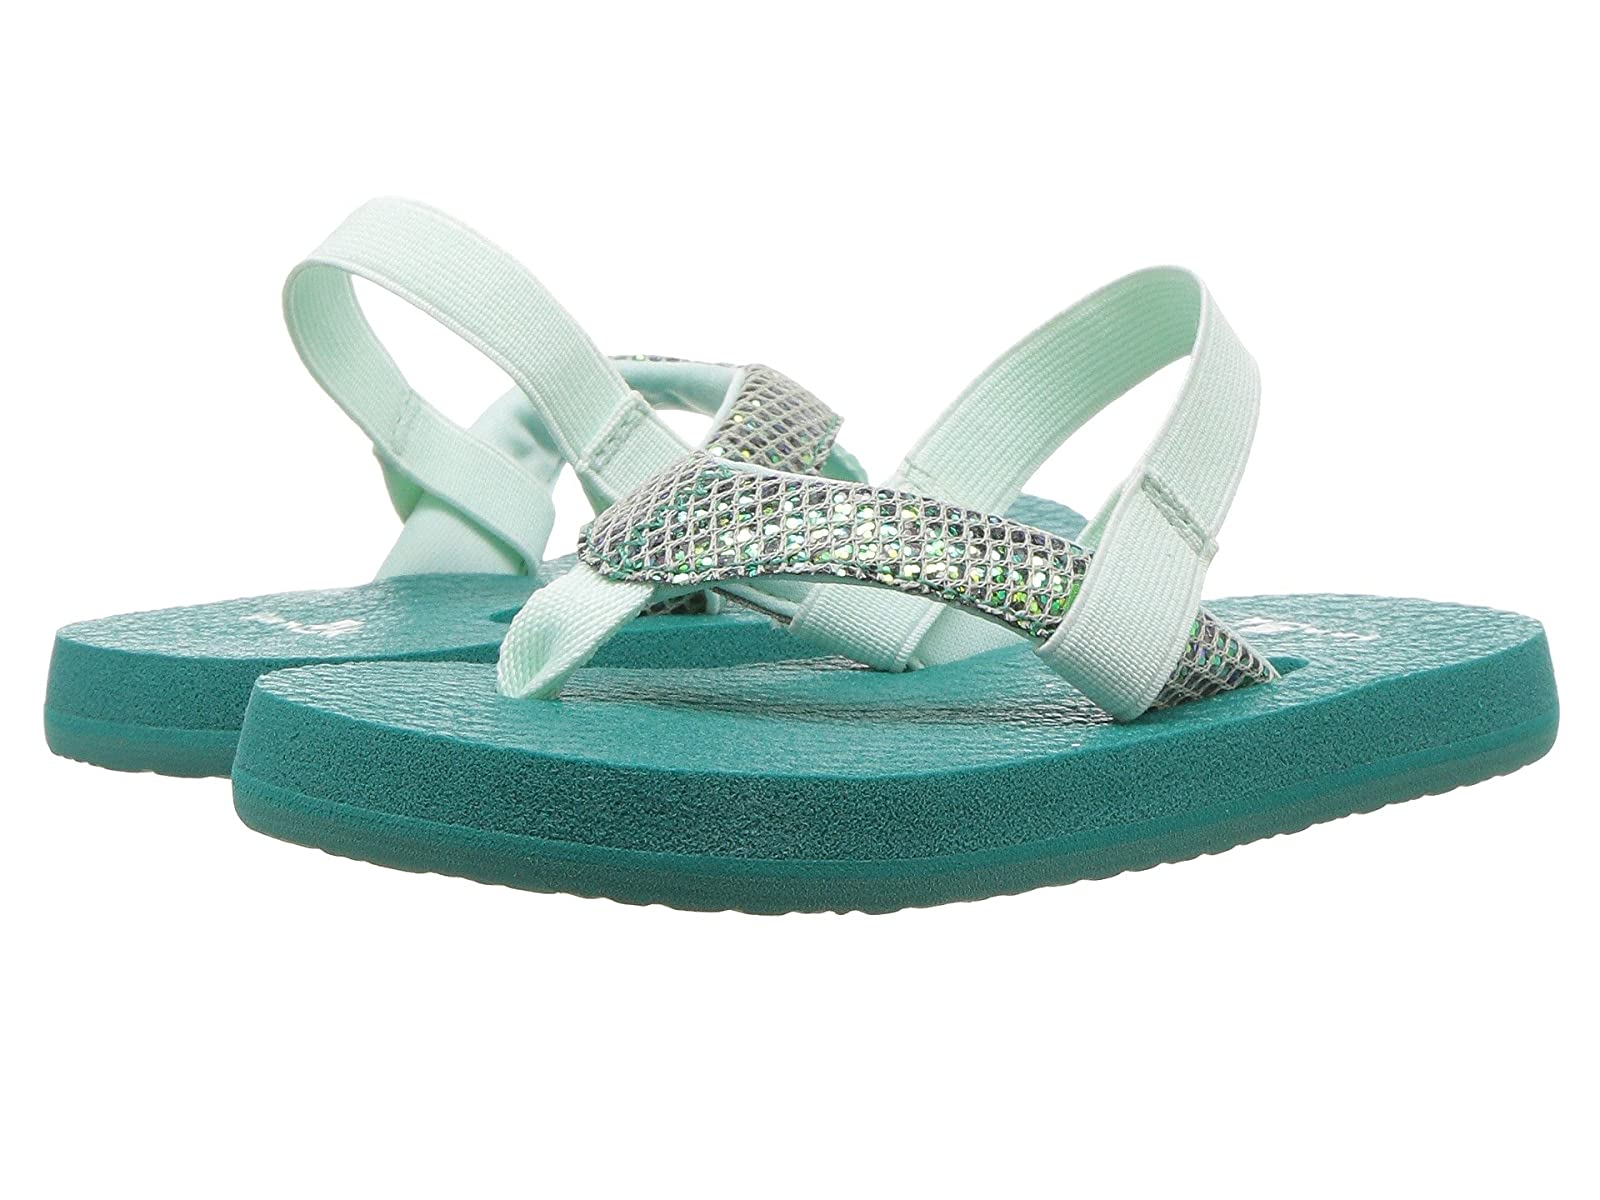 Sanuk Kids Yoga Glitter (Toddler/Little Kid)Atmospheric grades have affordable shoes